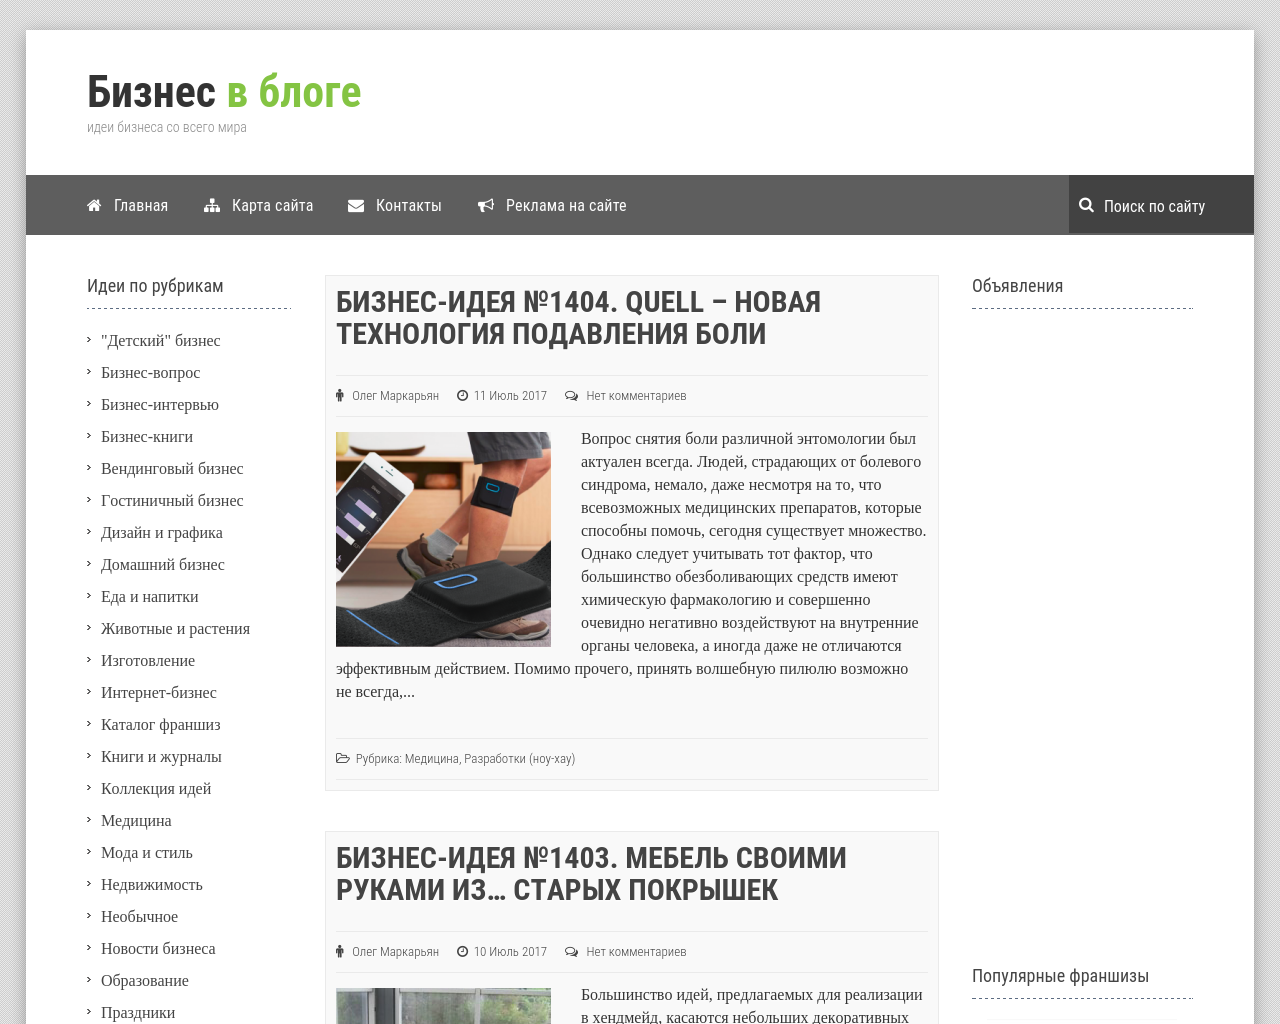 Biznesvbloge.ru-Advertising-Reviews-Pricing